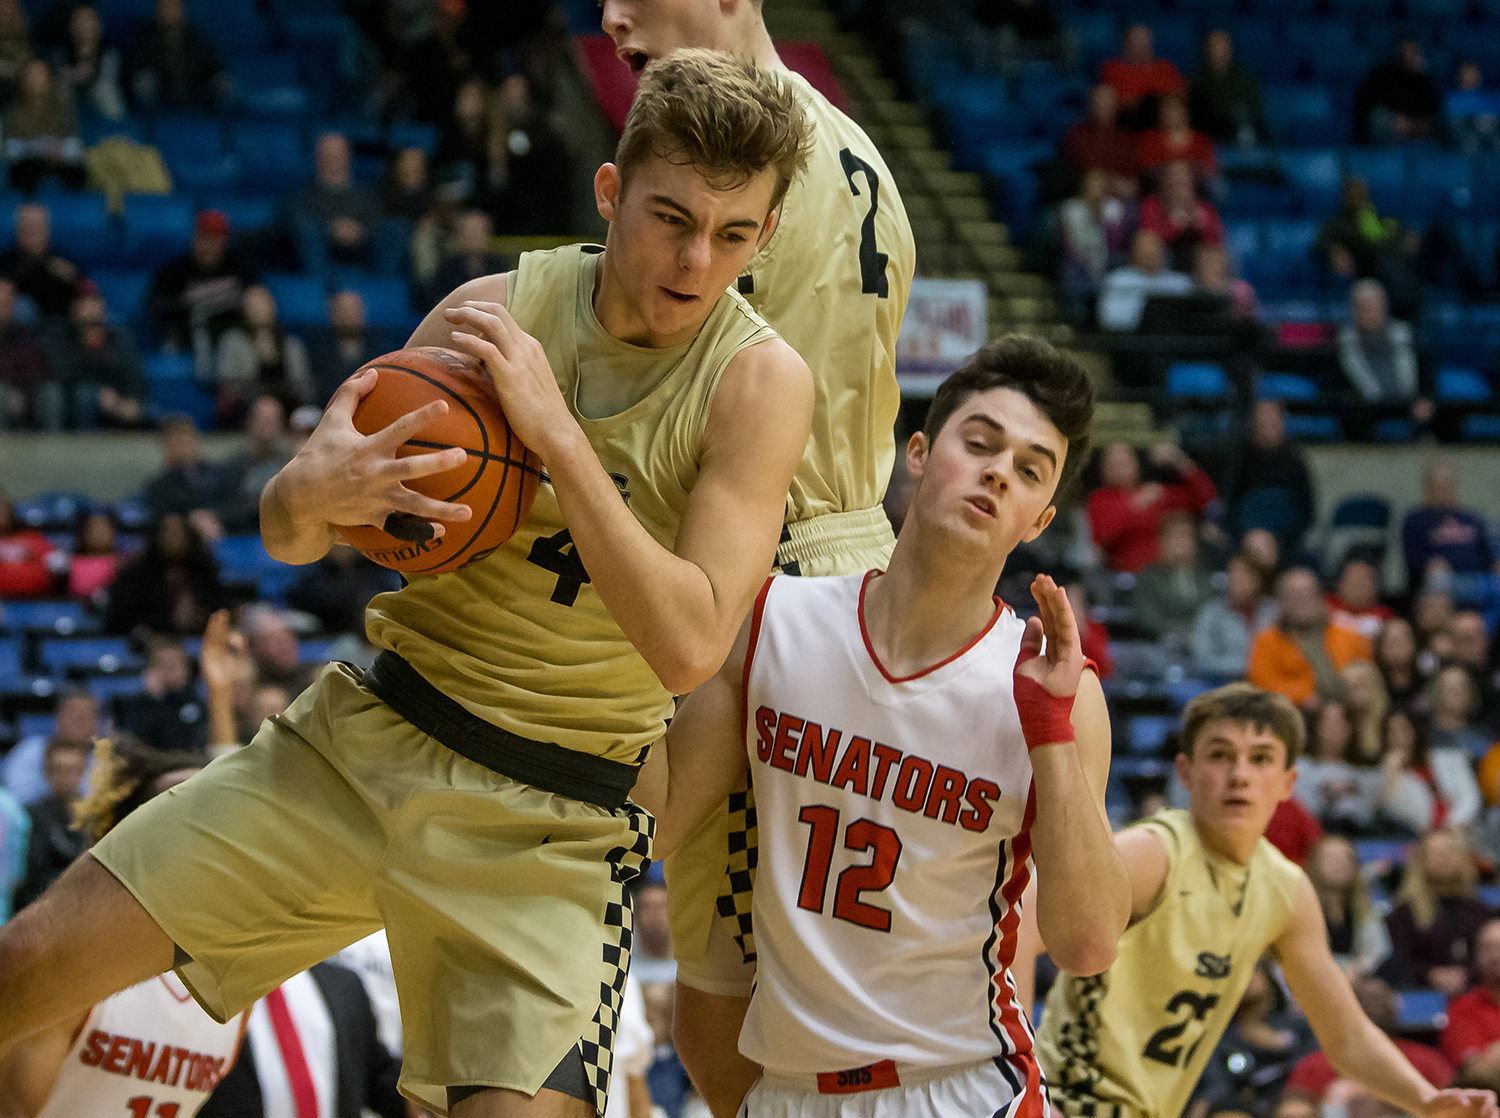 Sacred Heart-Griffin's Charlie Hamilton (4) pulls in a rebound against Springfield's Kobe Slater (12) in the fourth quarter on opening night of the Boys City Tournament at the Bank of Springfield Center, Wednesday, Jan. 16, 2019, in Springfield, Ill. [Justin L. Fowler/The State Journal-Register]